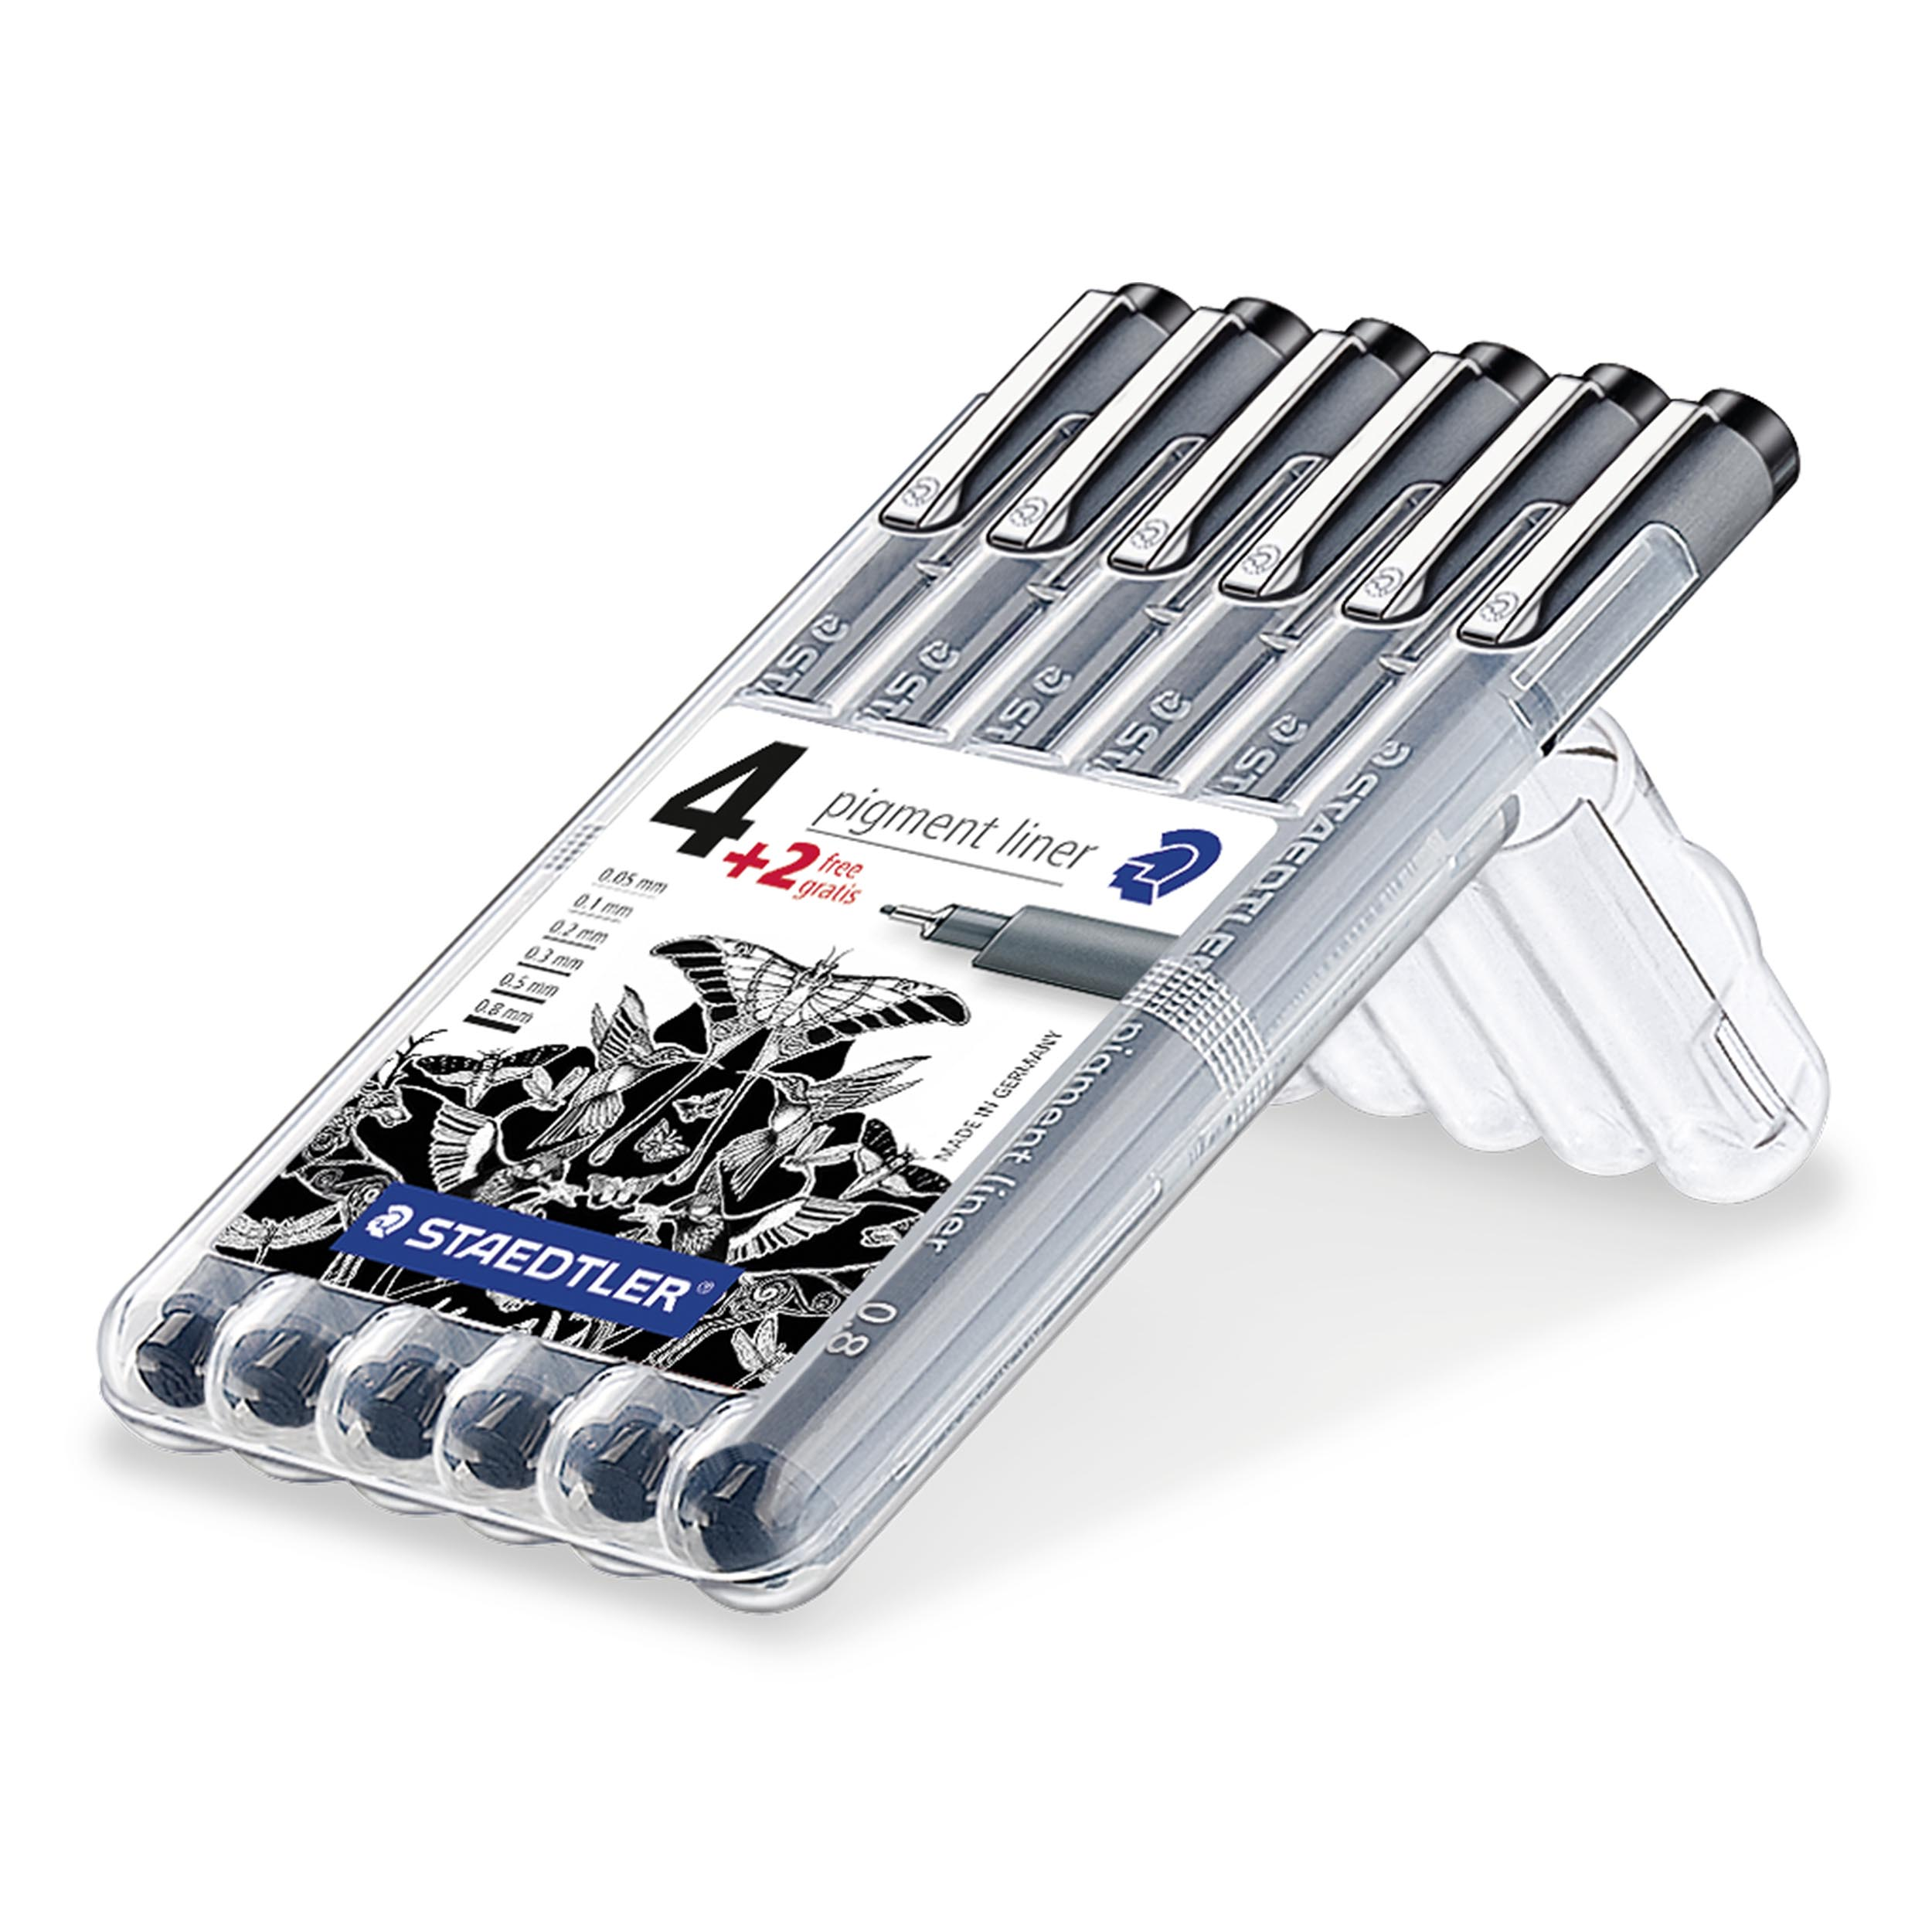 Image of   Fineliner pigment liner ass sort (6) - STA308SB6P